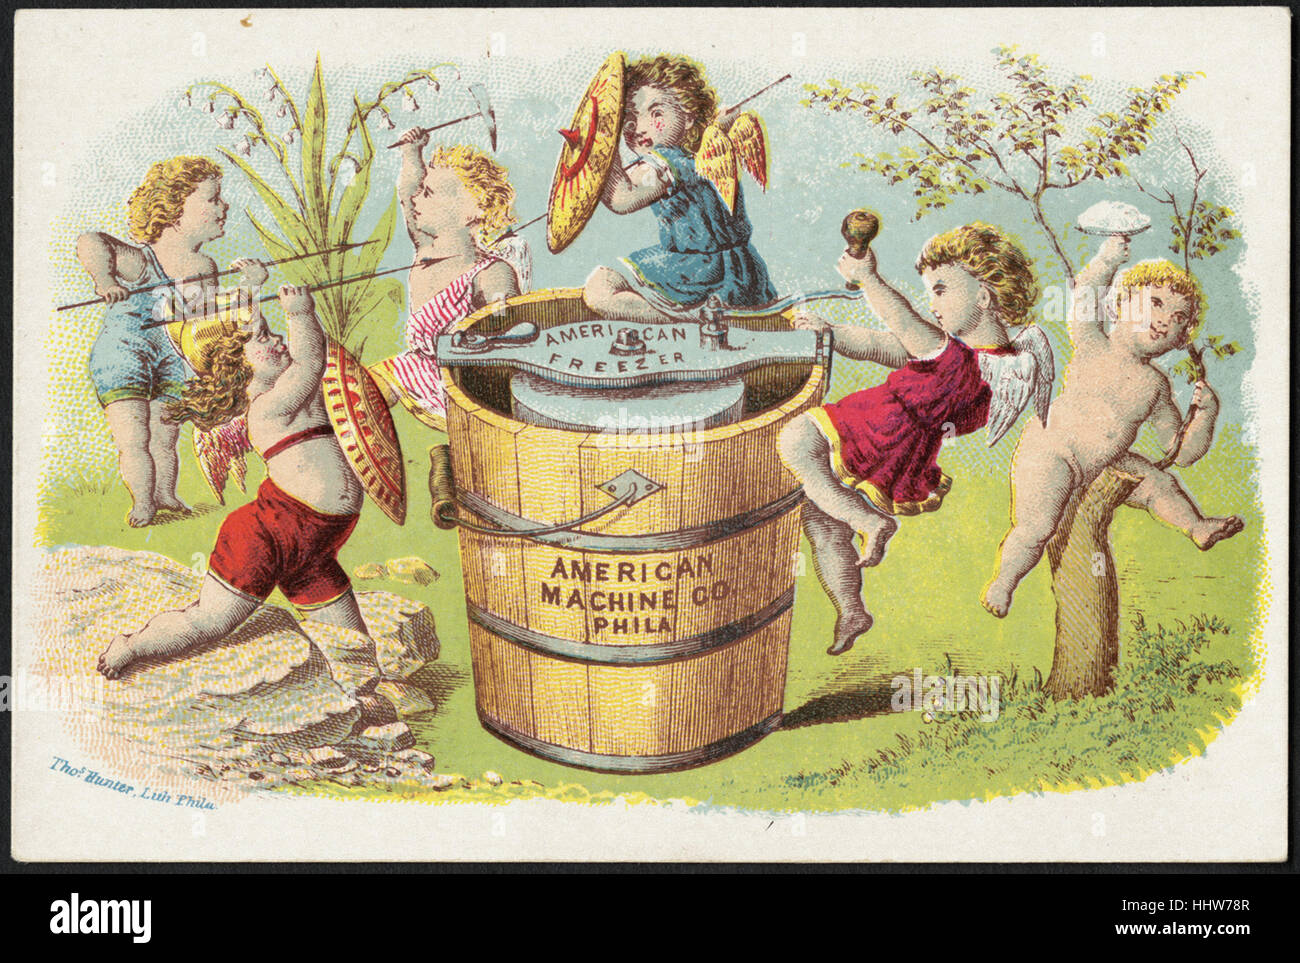 American Machine Co., Phila. (front)  - Home Furnishings Trade Cards - Stock Image